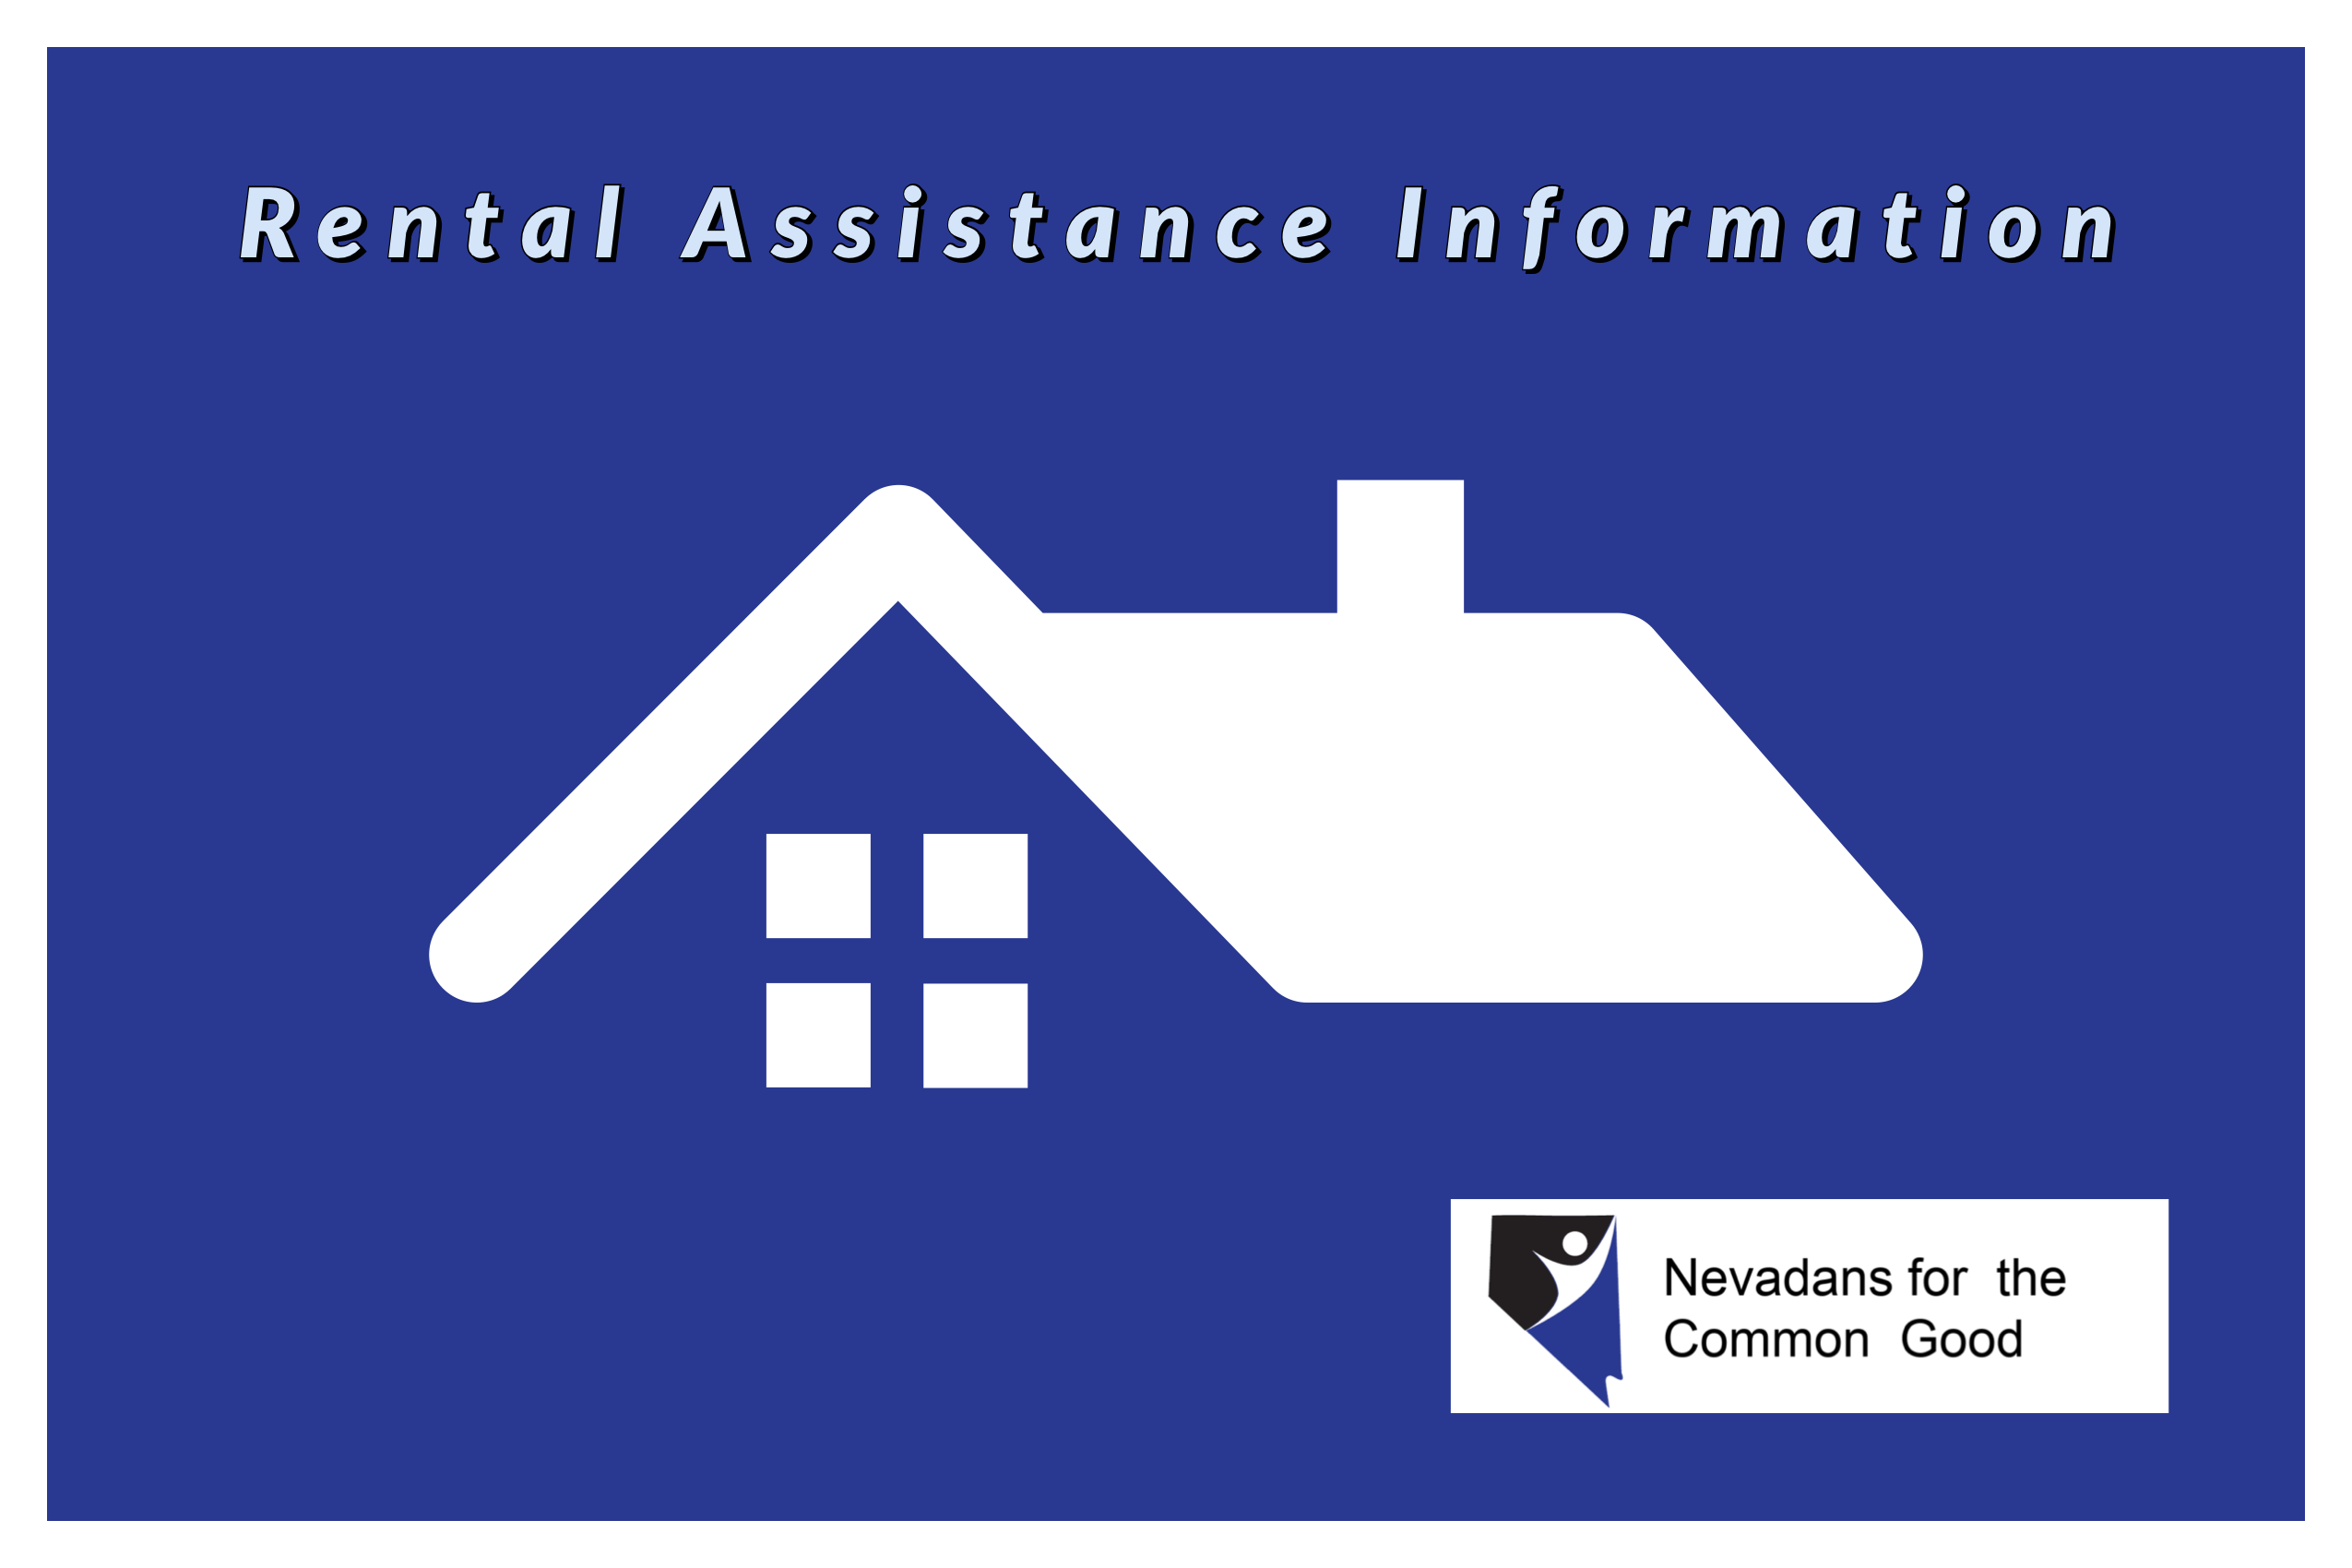 Rental Assistance to those in Need from Nevadans for the Common Good